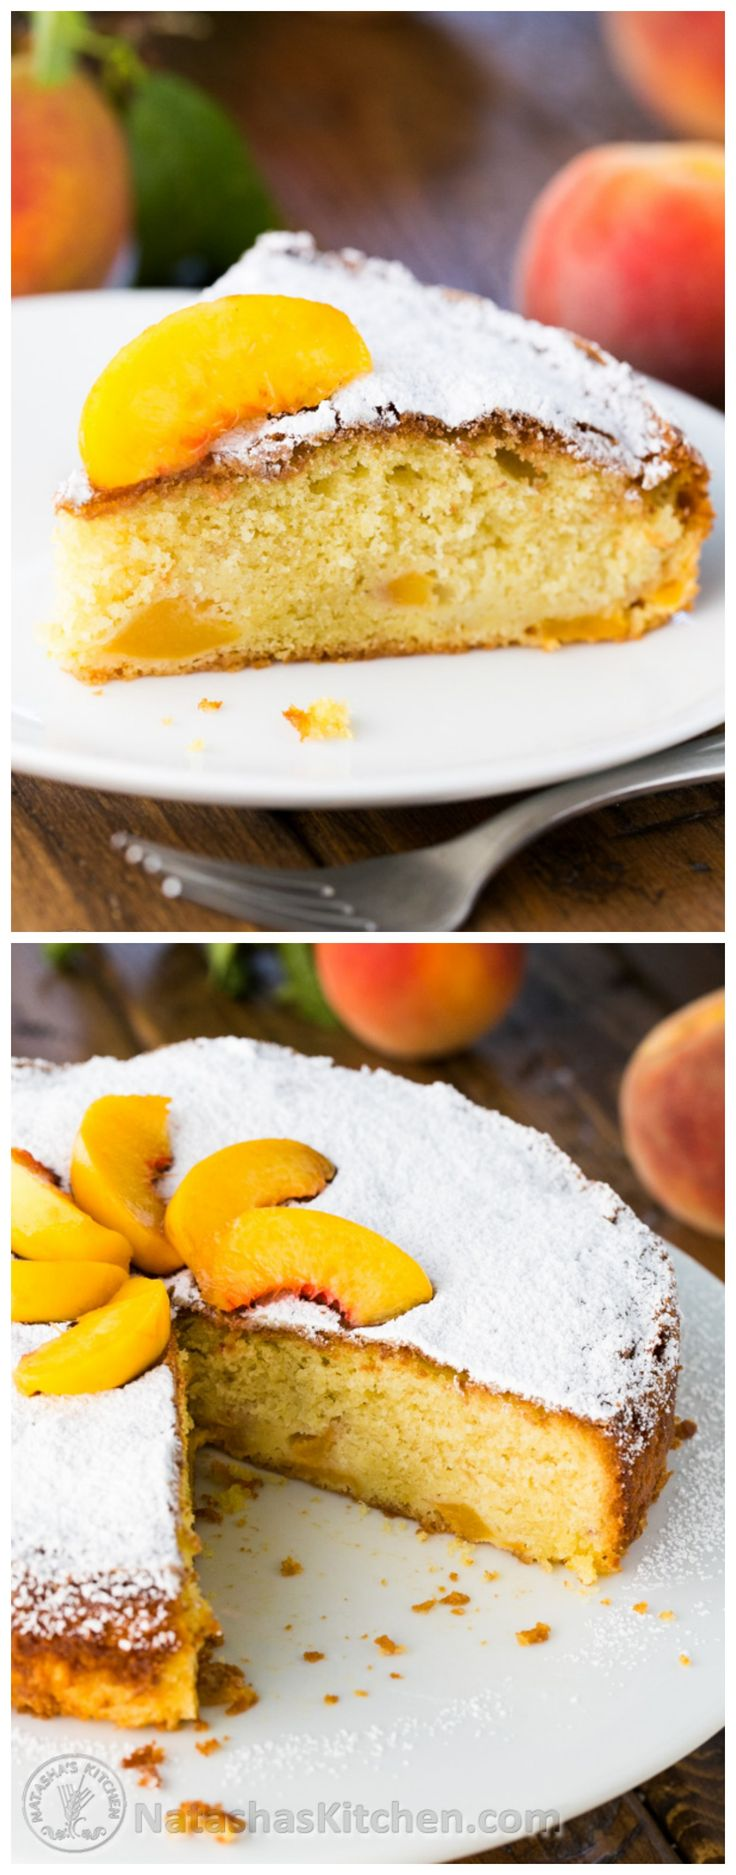 A quick summer peach cake that uses a pound of juicy peaches. This one is a keeper! It's moist and just right. @natashaskitchen